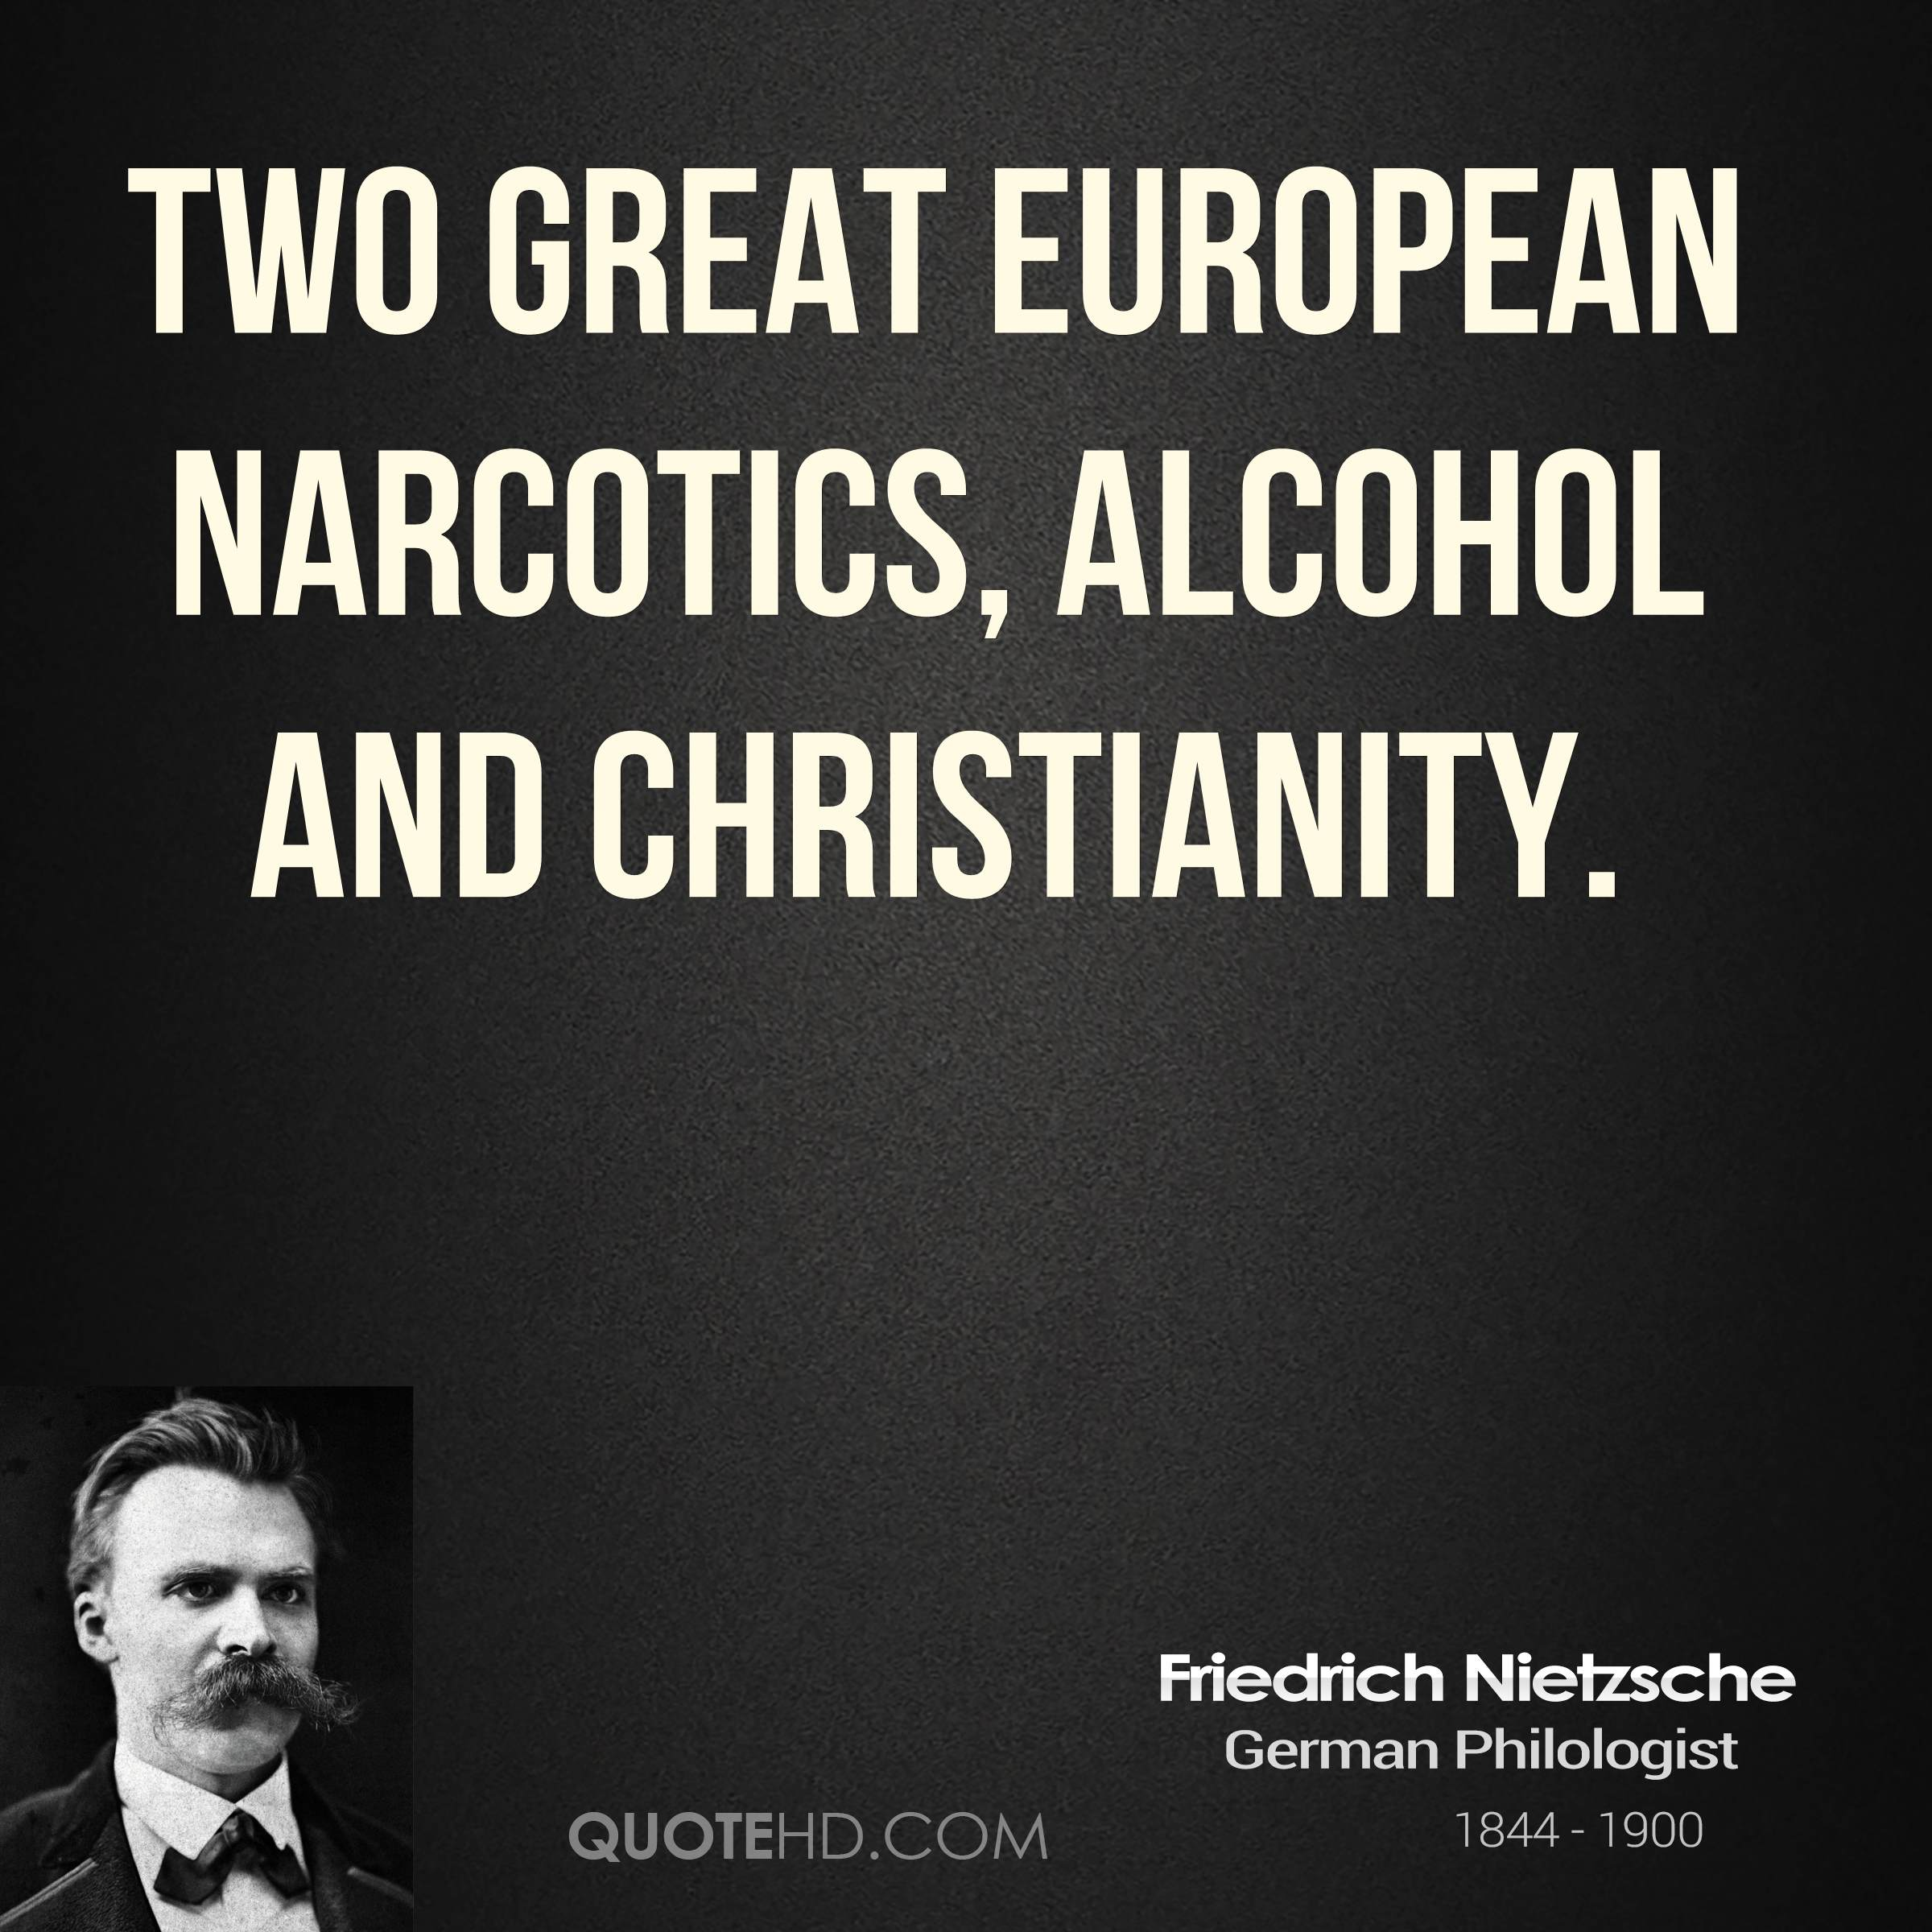 an overview of the friedrich nietzsches argument The parable of the madman, presented here, is nietzsche's attempt to argue that mankind has killed god.